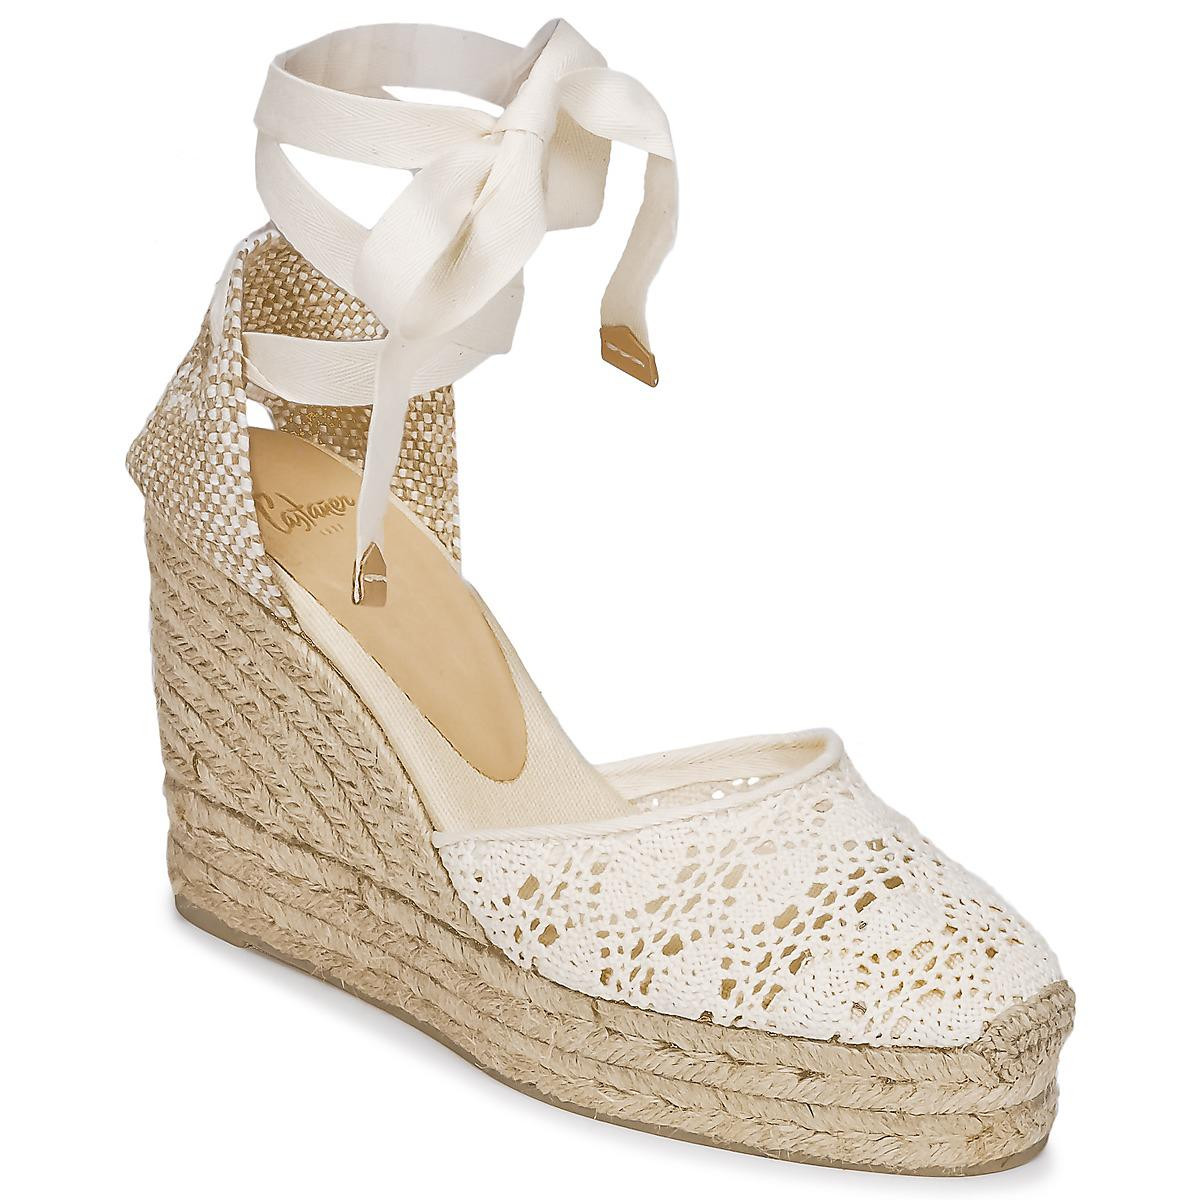 Discount New Styles For Cheap Price Castaner CARINA women's Espadrilles / Casual Shoes in oJCvKW8jw